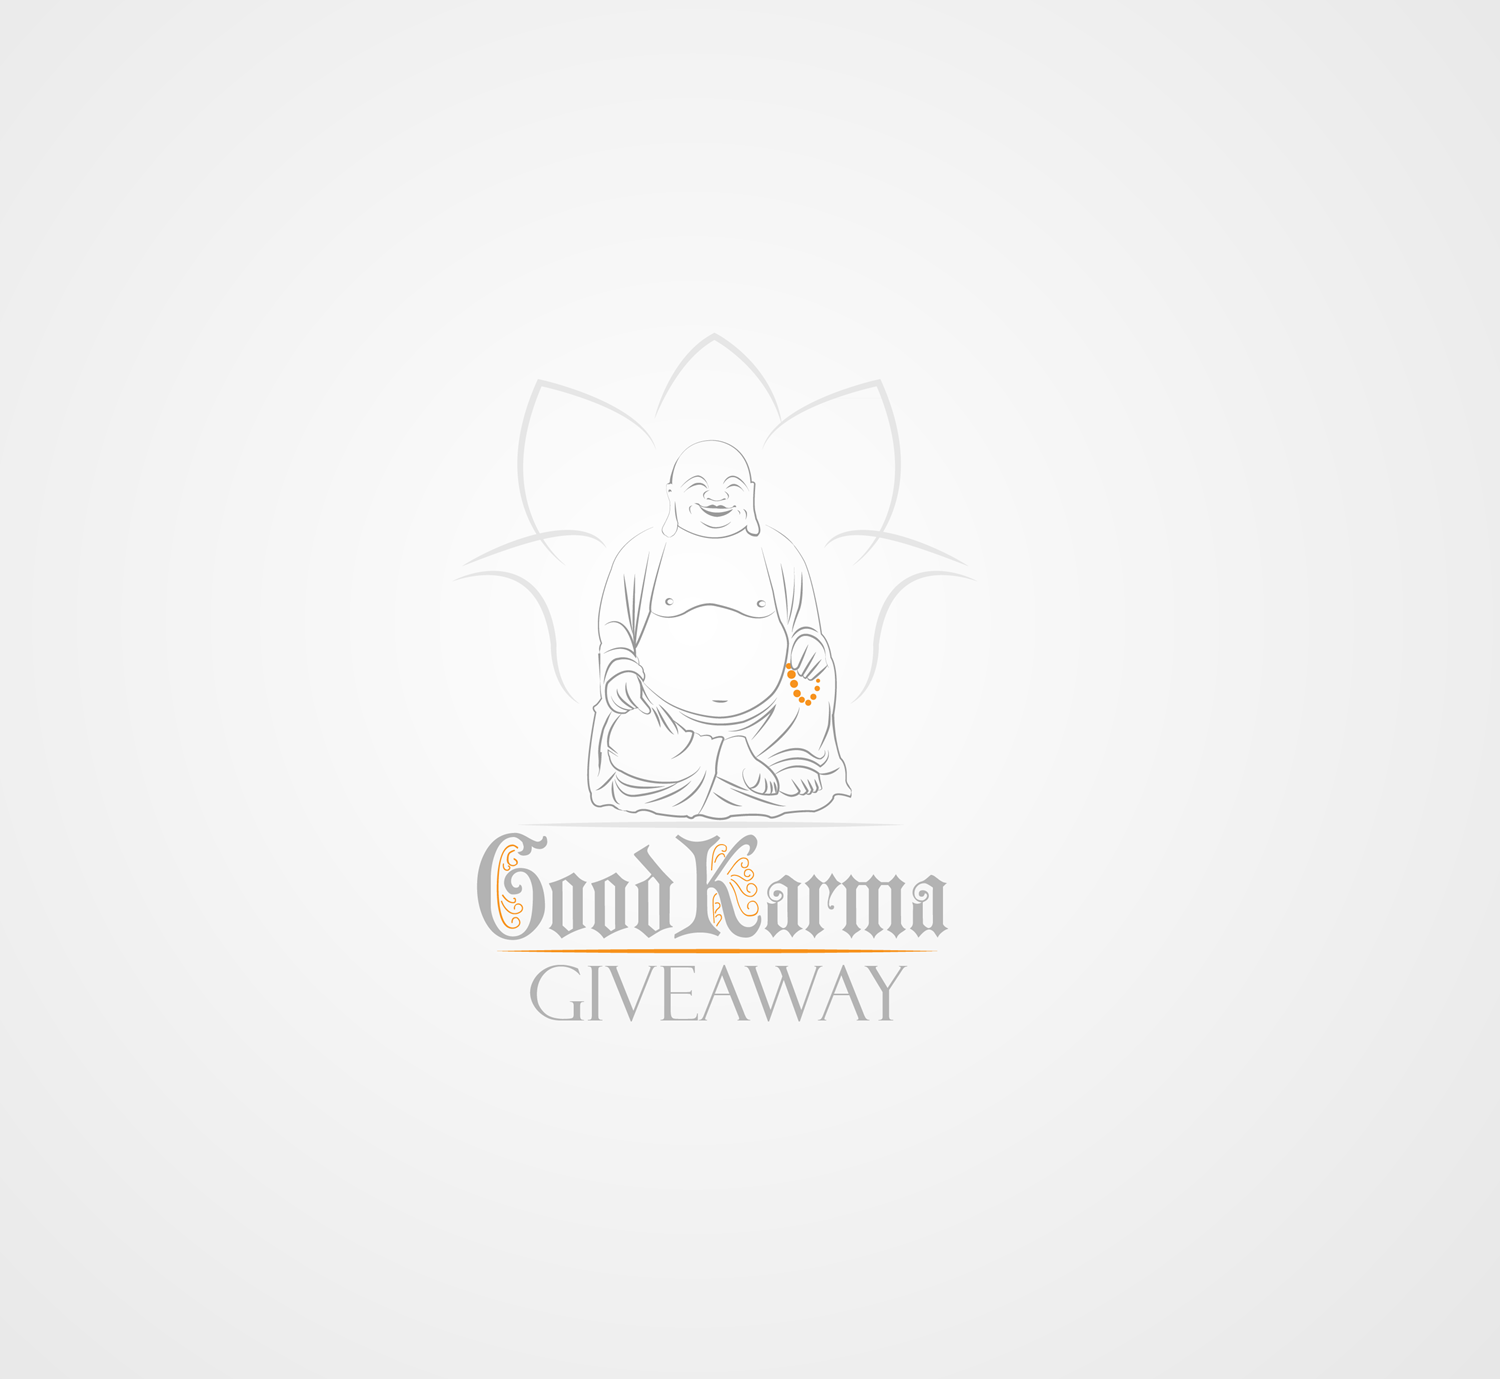 logo for Good Karma Giveaways